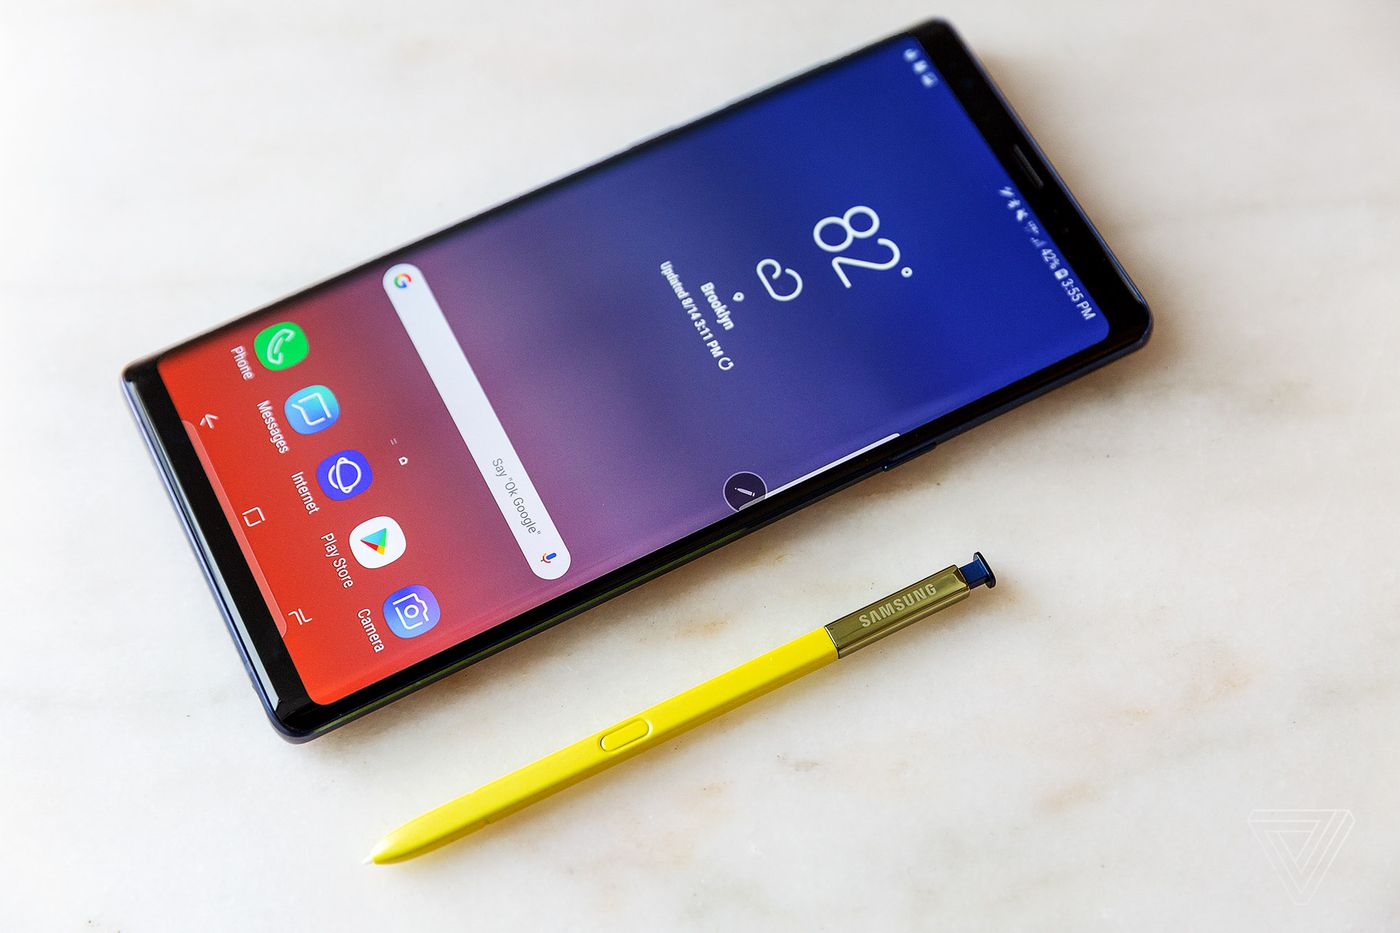 Samsung Galaxy Note 9 review: more of everything - The Verge